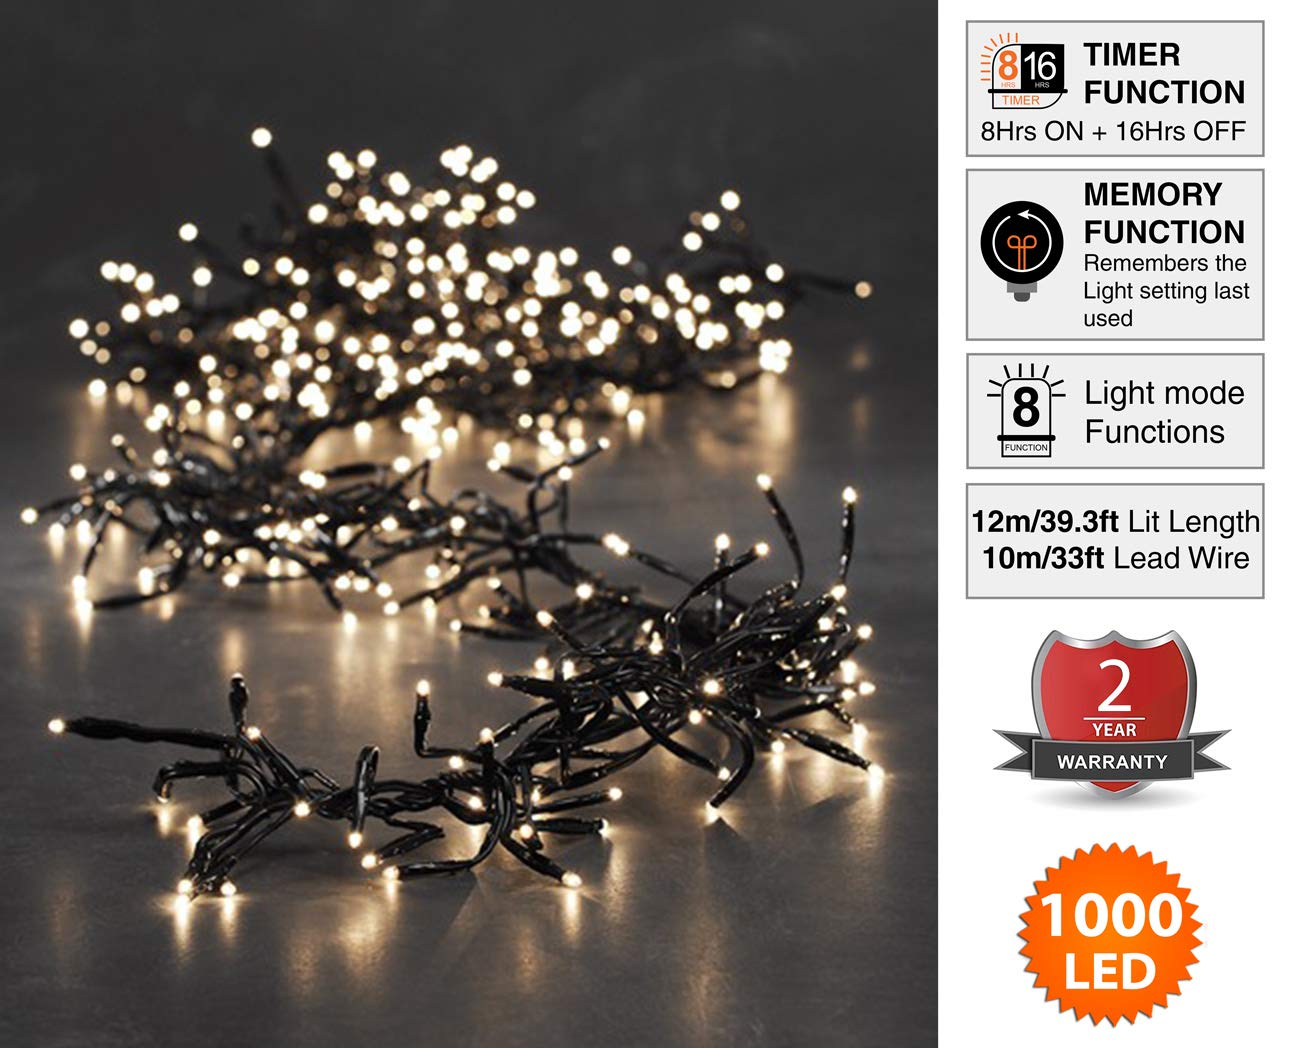 Cluster Lights 1000 Led Warm White Tree Indoor And Outdoor Valentine Chaser Use Christmas String 8 Modes With Memory Timer Function Mains Powered Fairy